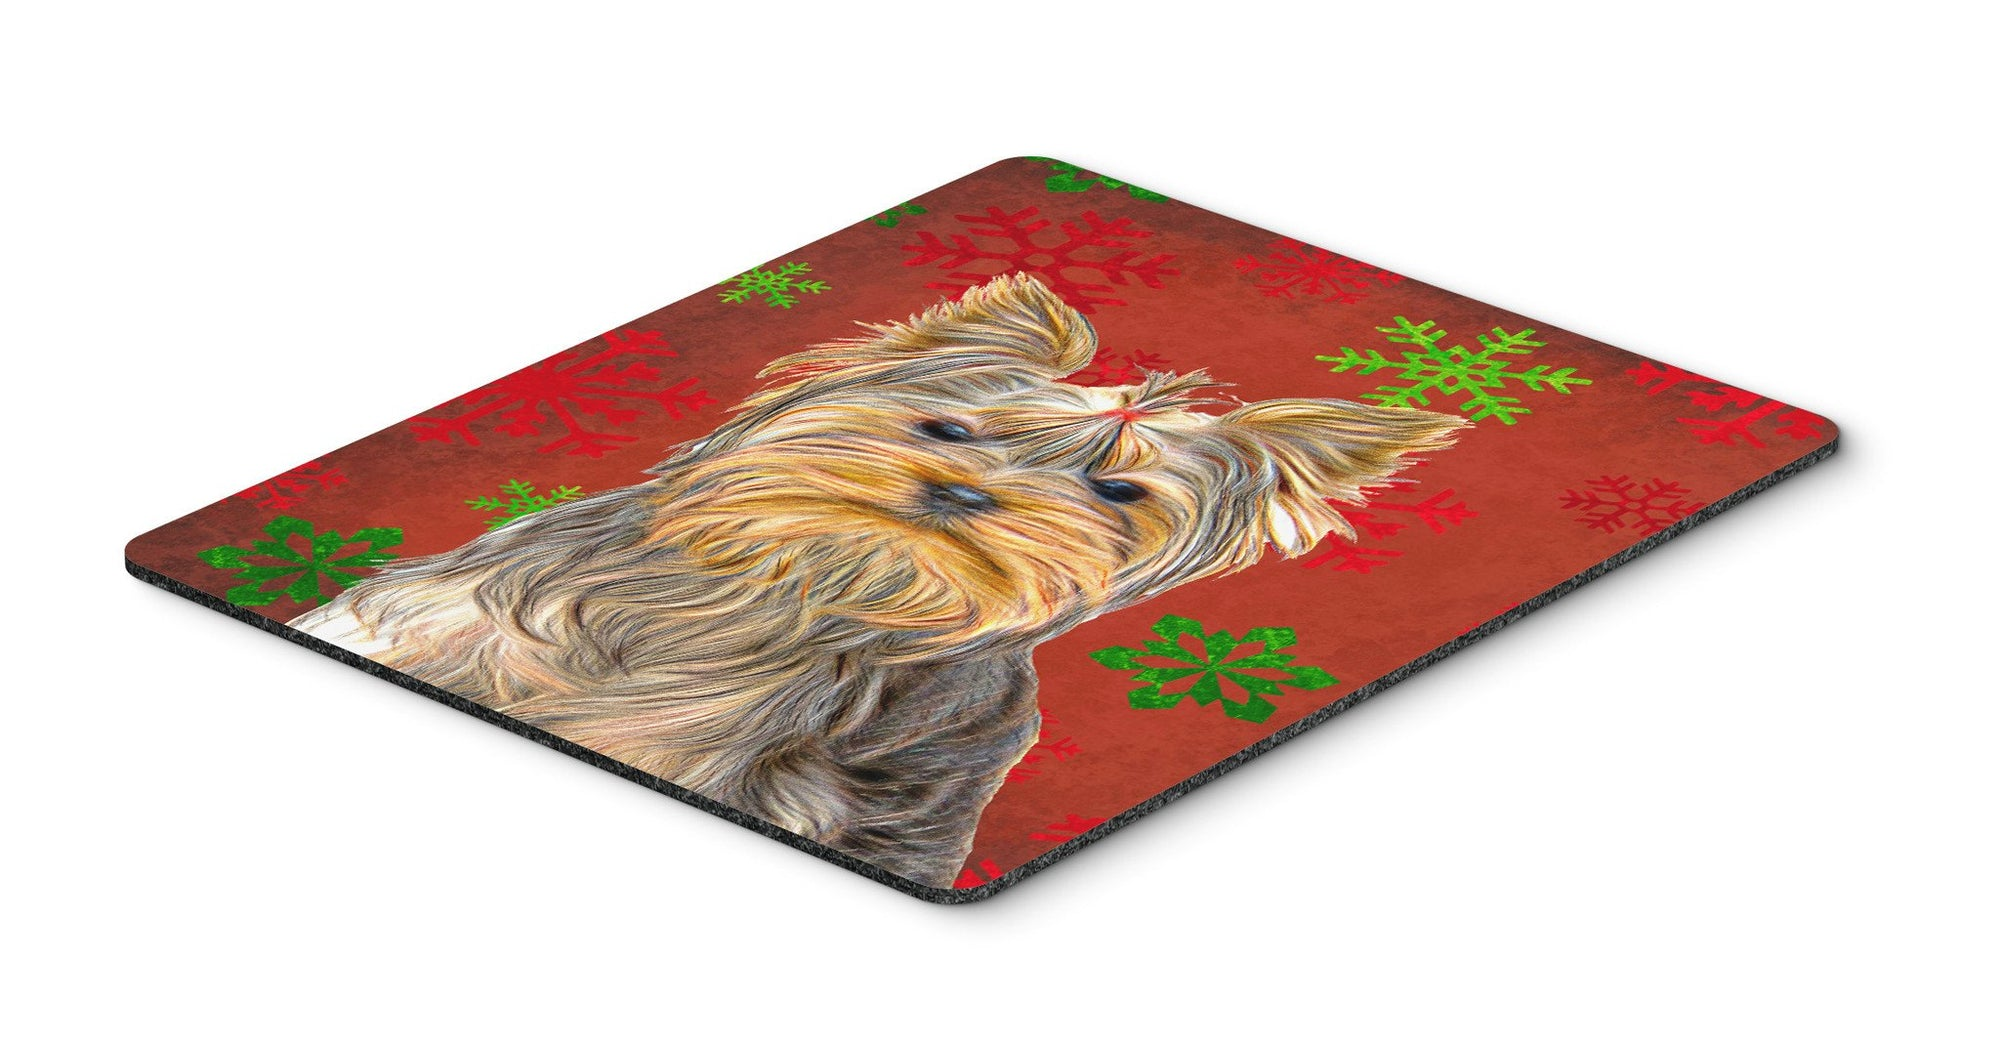 Buy this Red Snowflakes Holiday Christmas  Yorkie / Yorkshire Terrier Mouse Pad, Hot Pad or Trivet KJ1184MP